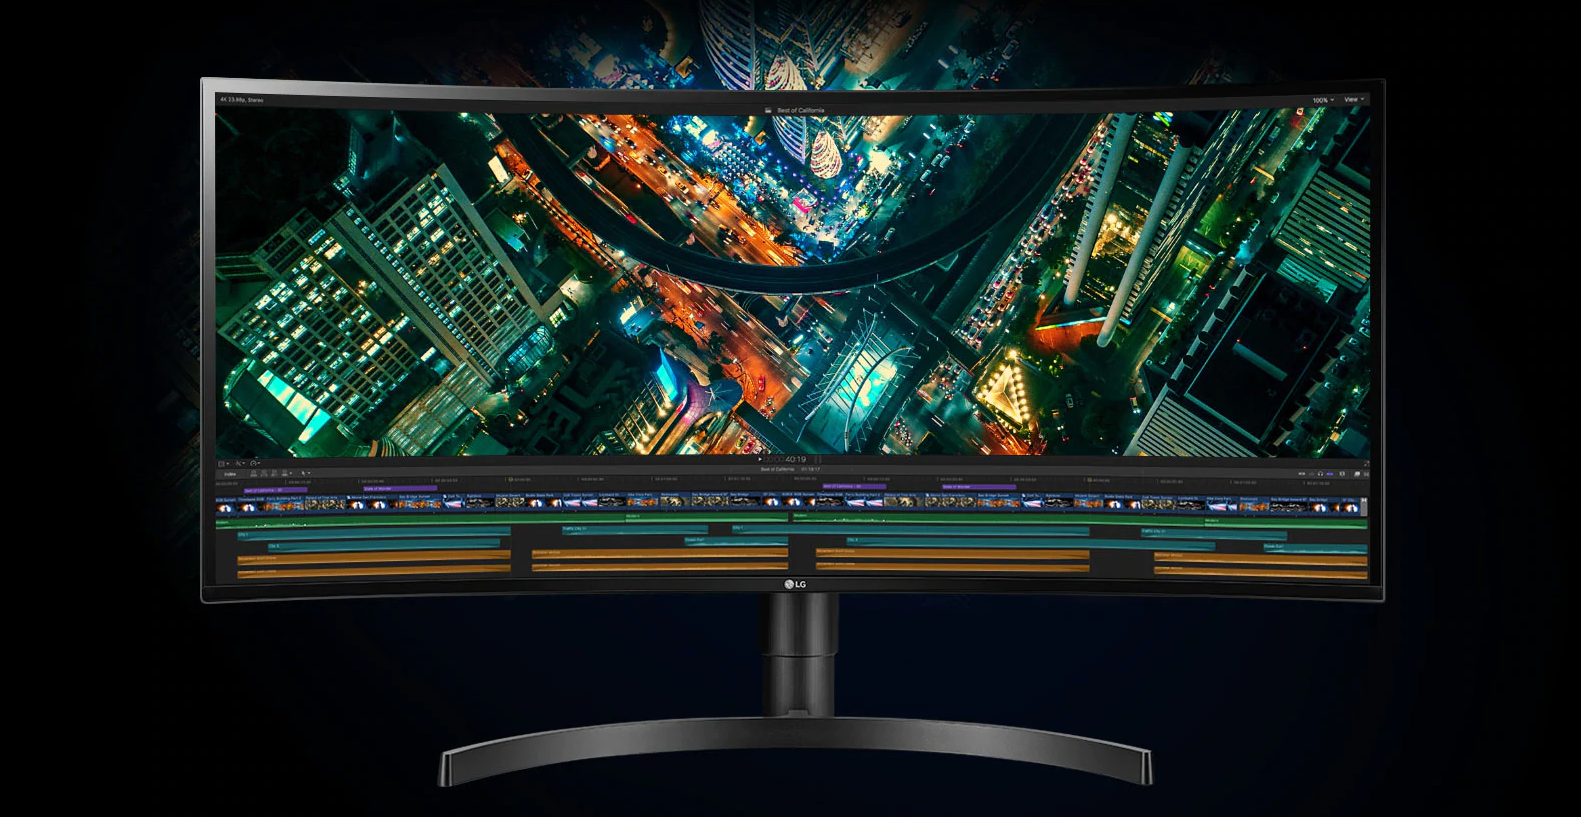 The LG 34WN80C-B UltraWide USB-C 1440p Ultrawide professional monitor is $550